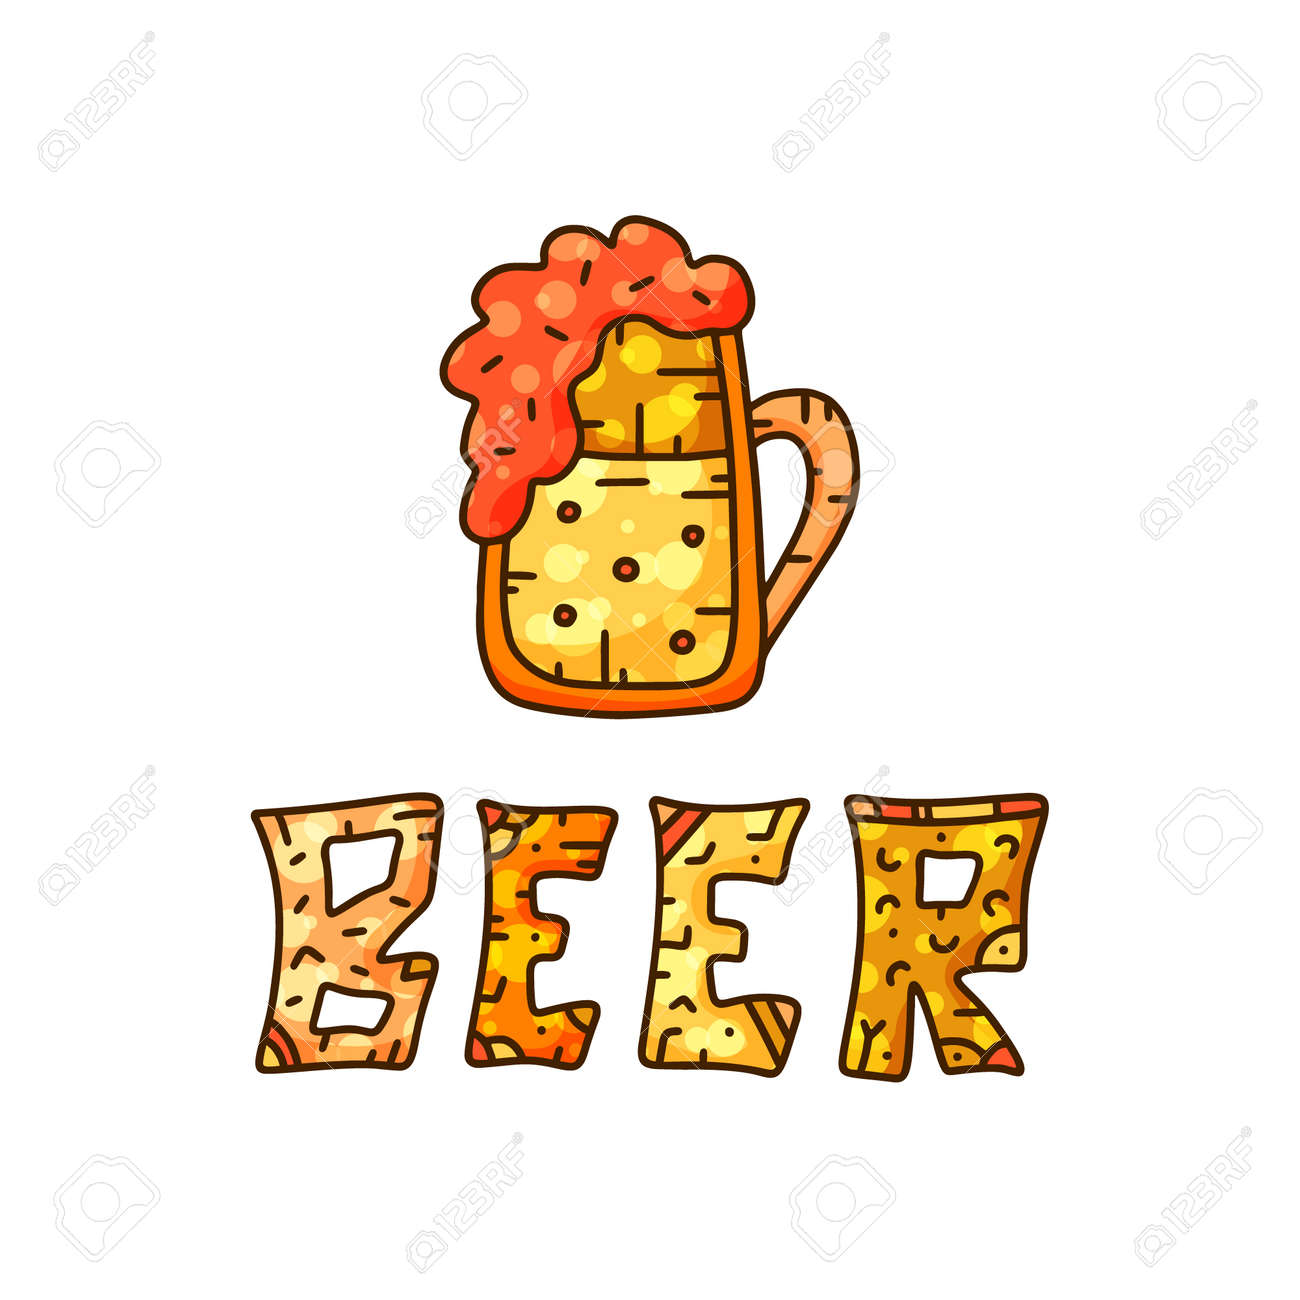 Color Design For Oktoberfest Or Beer Products Doodle Lettering Royalty Free Cliparts Vectors And Stock Illustration Image 130307842